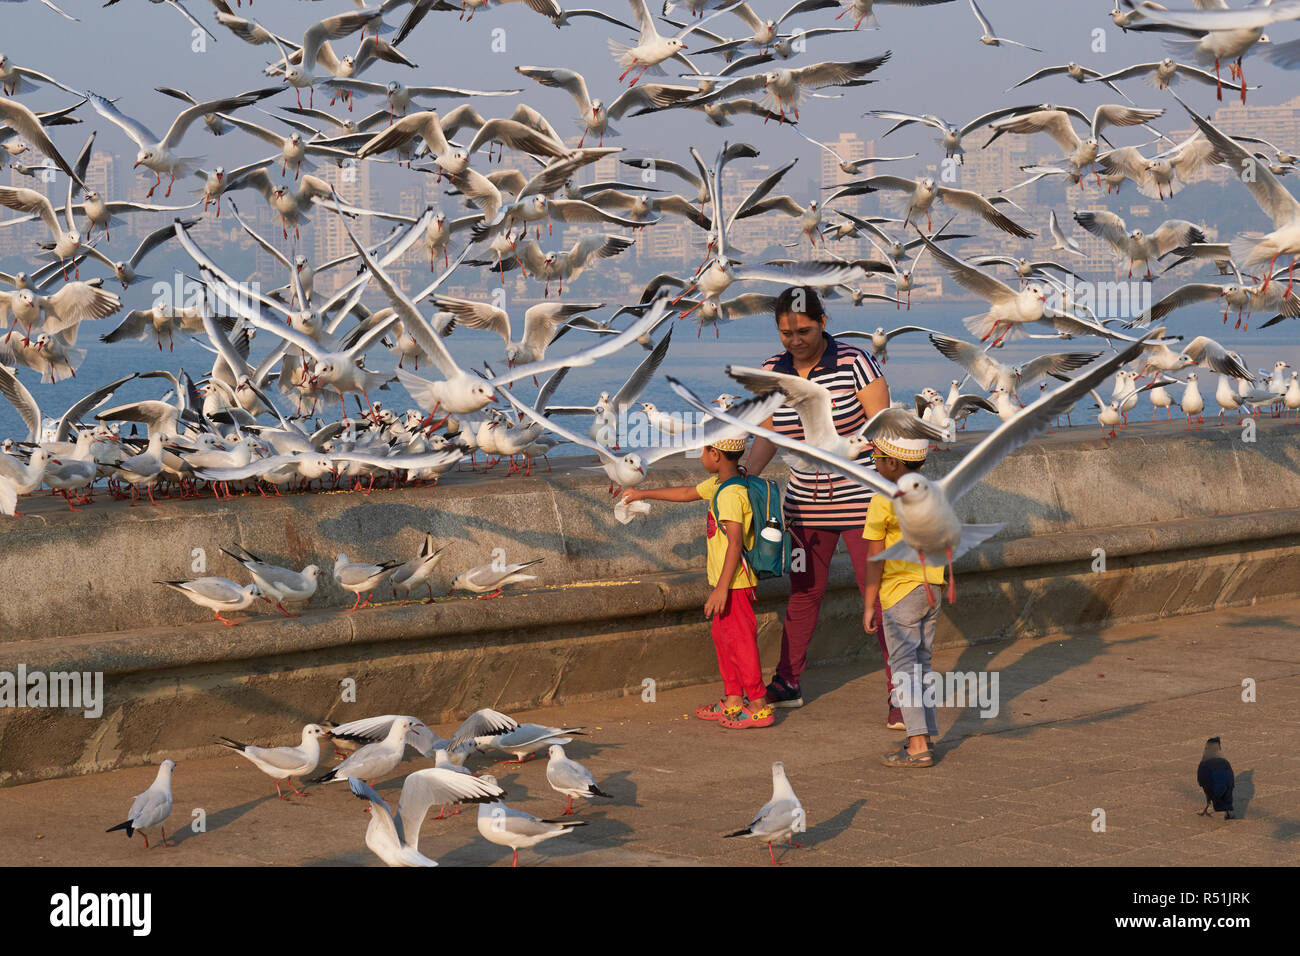 Two young boys and a relative at Marine Drive, a seaside boulevard along the Arabian Sea in Mumbai, India, surrounded by migratory seagulls - Stock Image